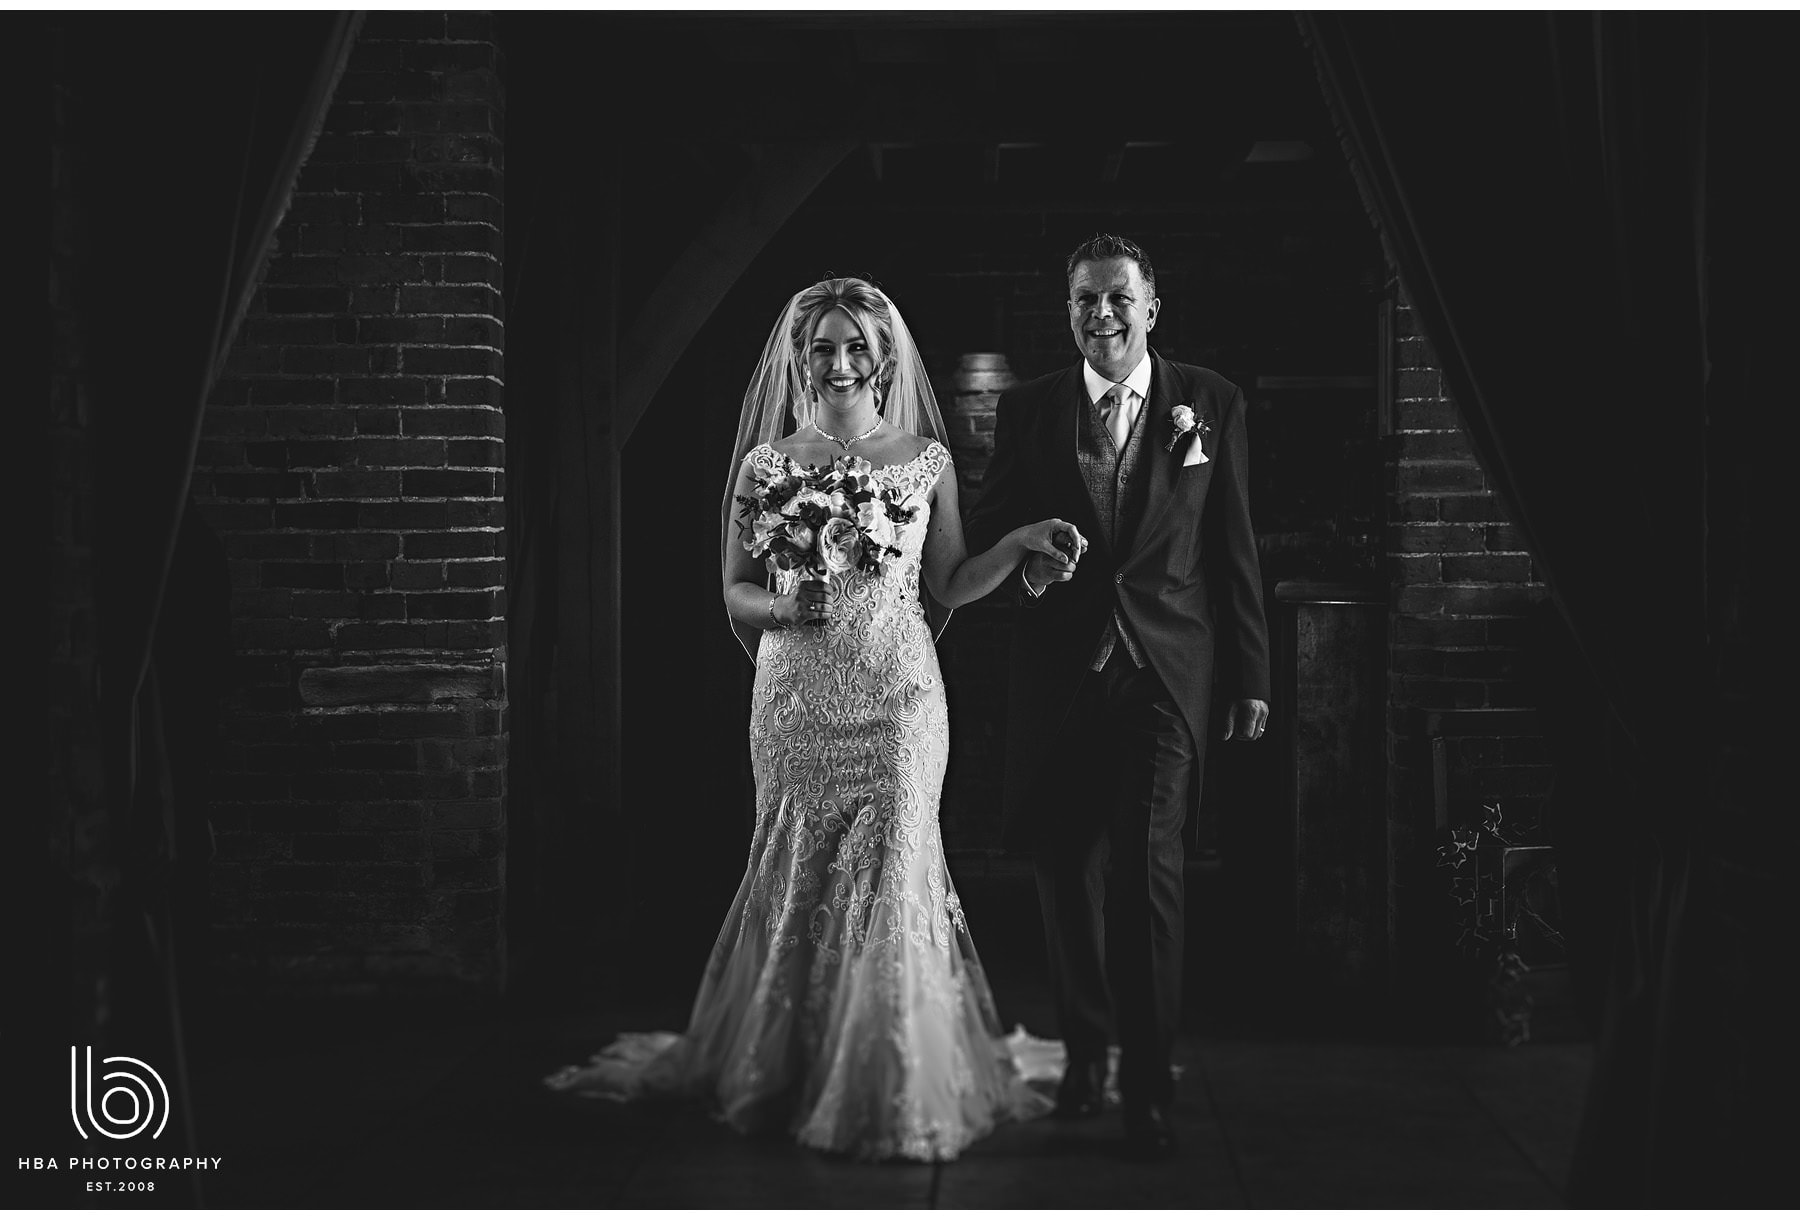 Shustoke_Barns_Wedding_Photography_in_Warwickshire_by_HBA_Photography